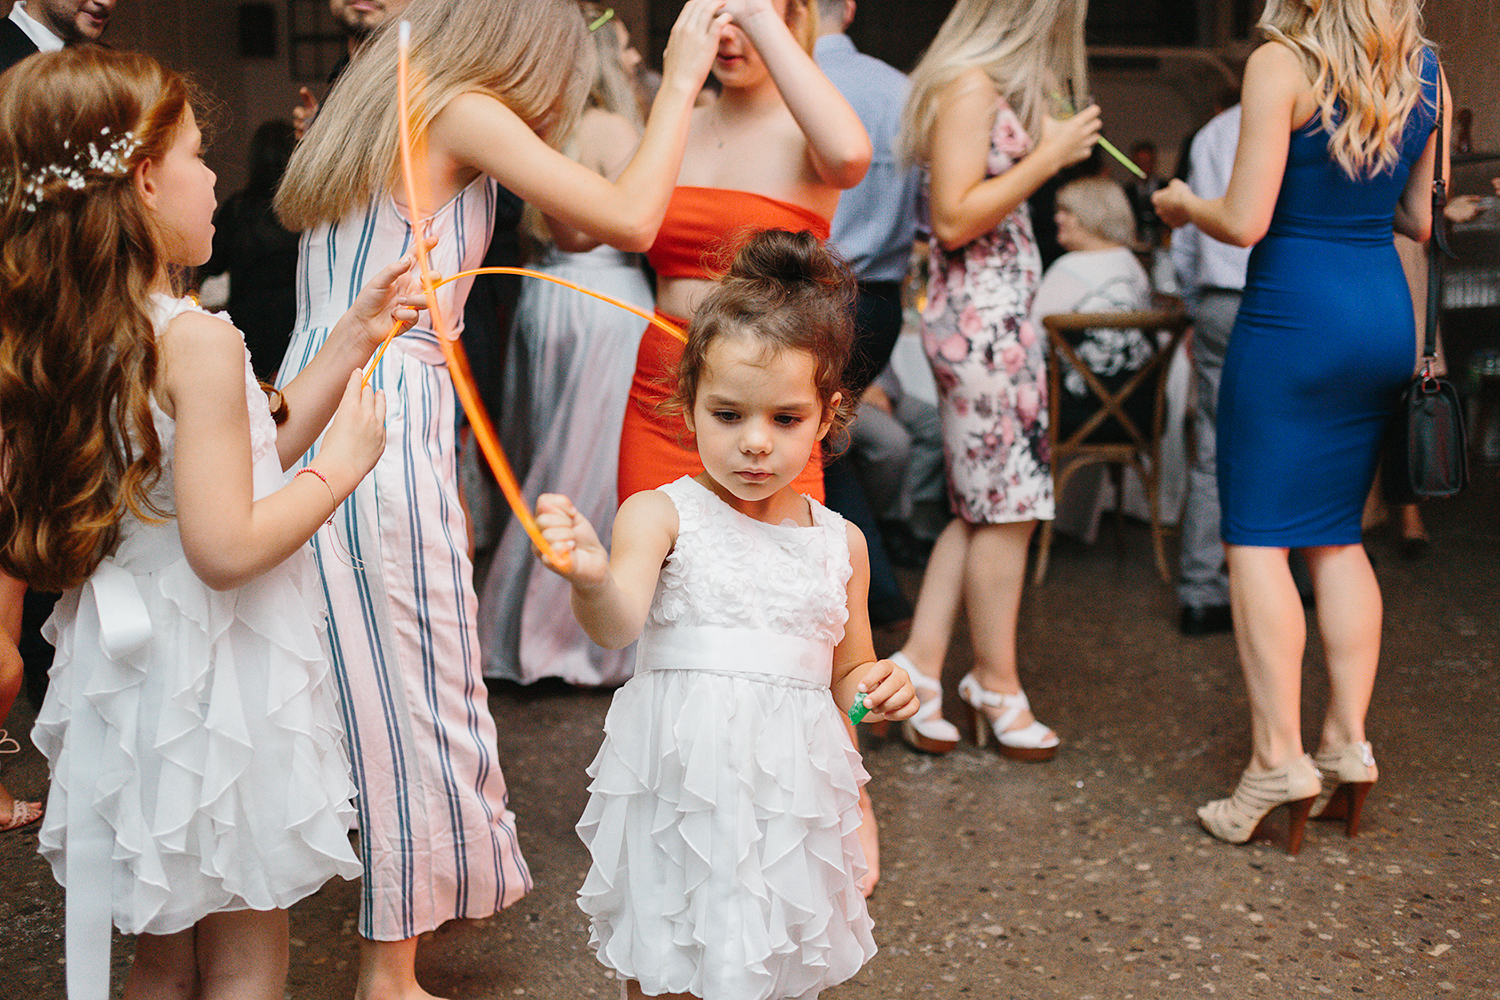 torontos-best-wedding-photographers-ryanne-hollies-photography-photojournalism-artistic-moody-toronto-airship37-graffiti-editorial-reception-dancing-together-hilarious-good-times-memories-cute-little-kid-with-glo-sticks.jpg